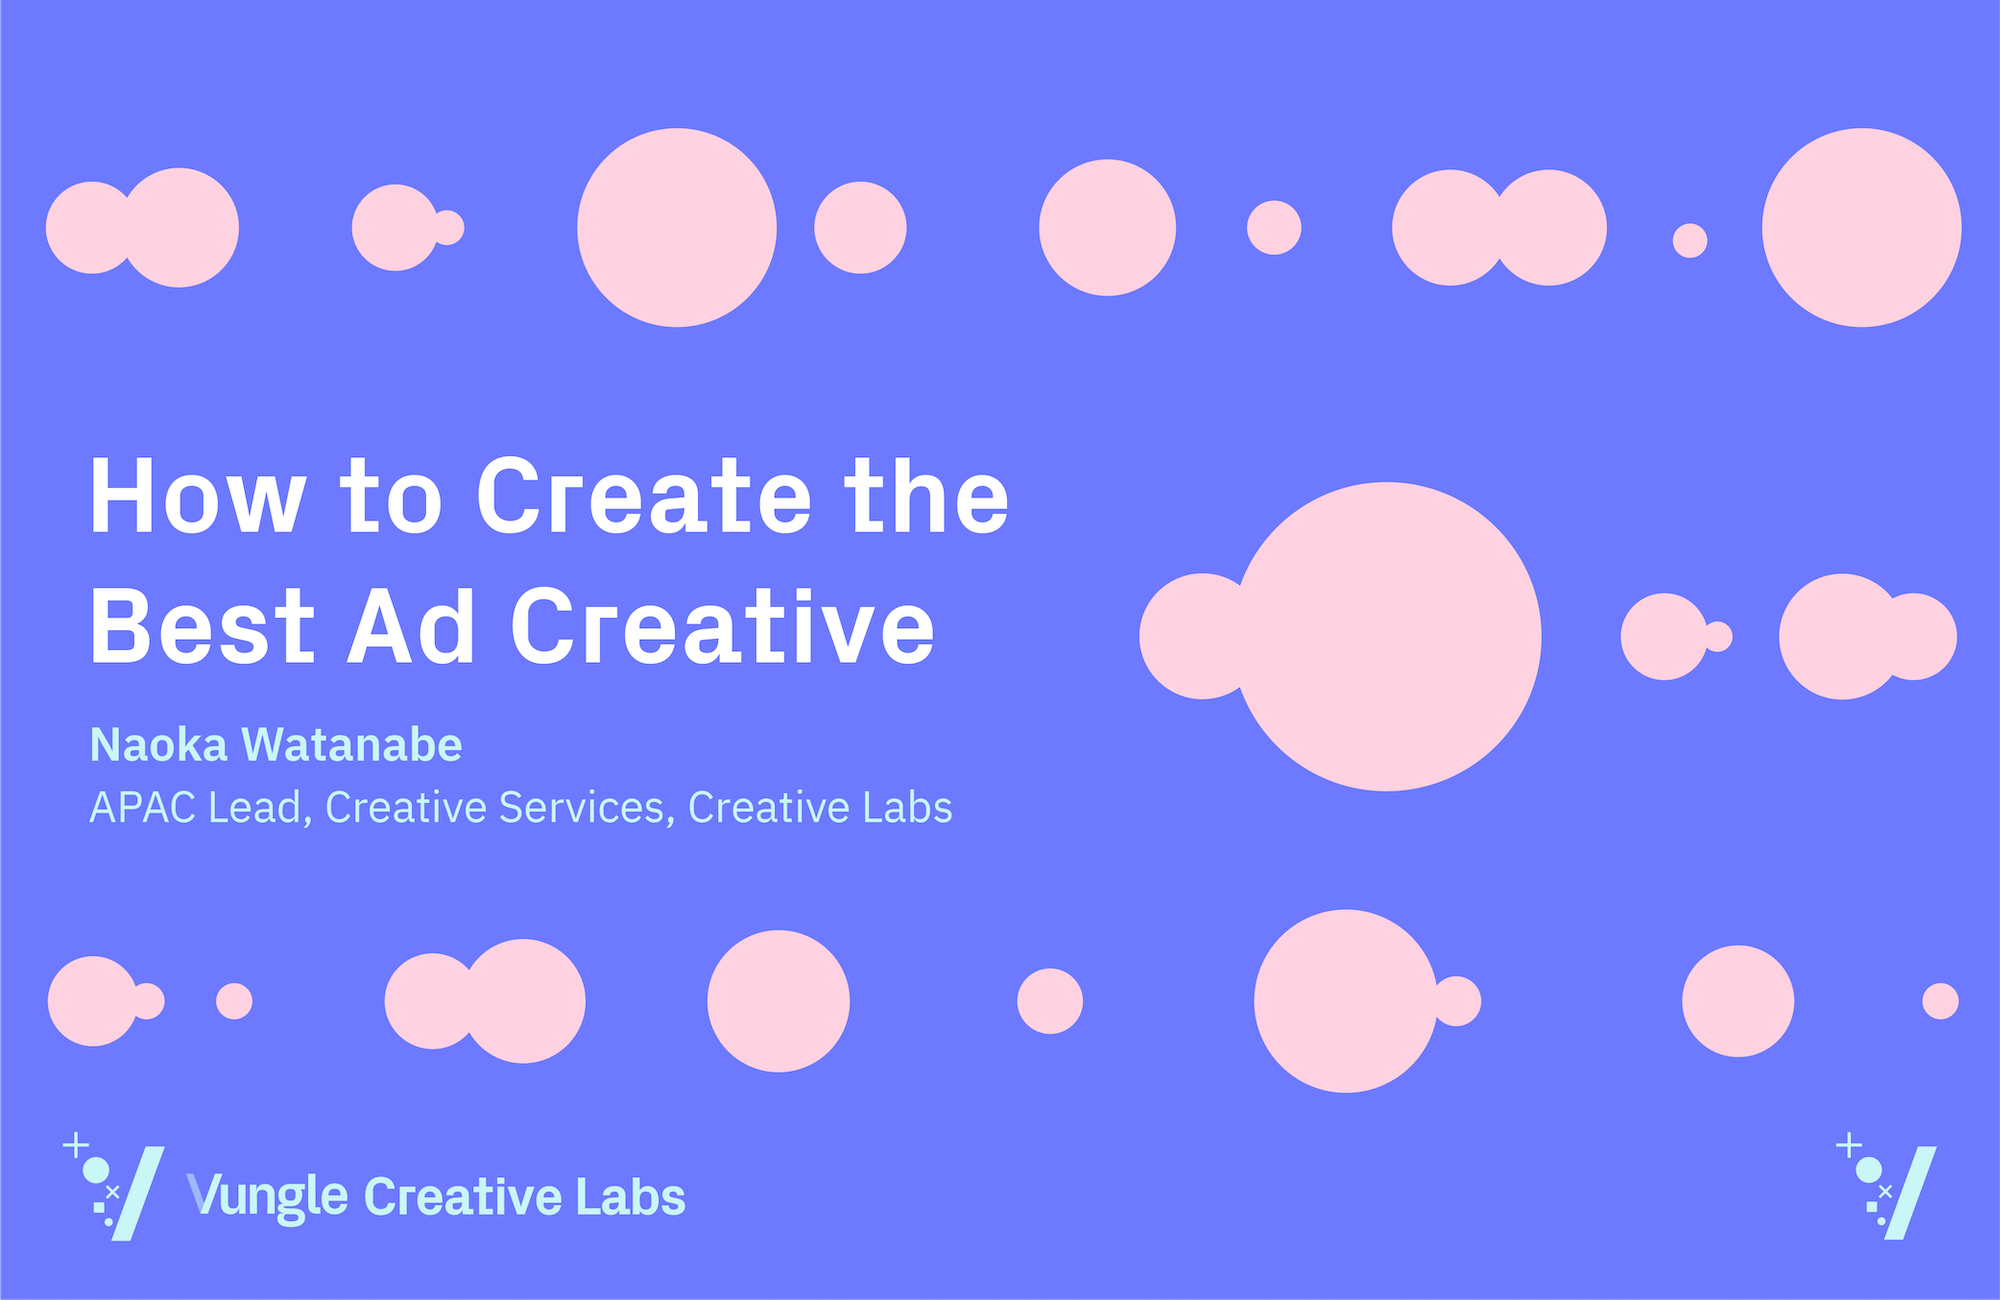 How to Create the Best Ad Creative